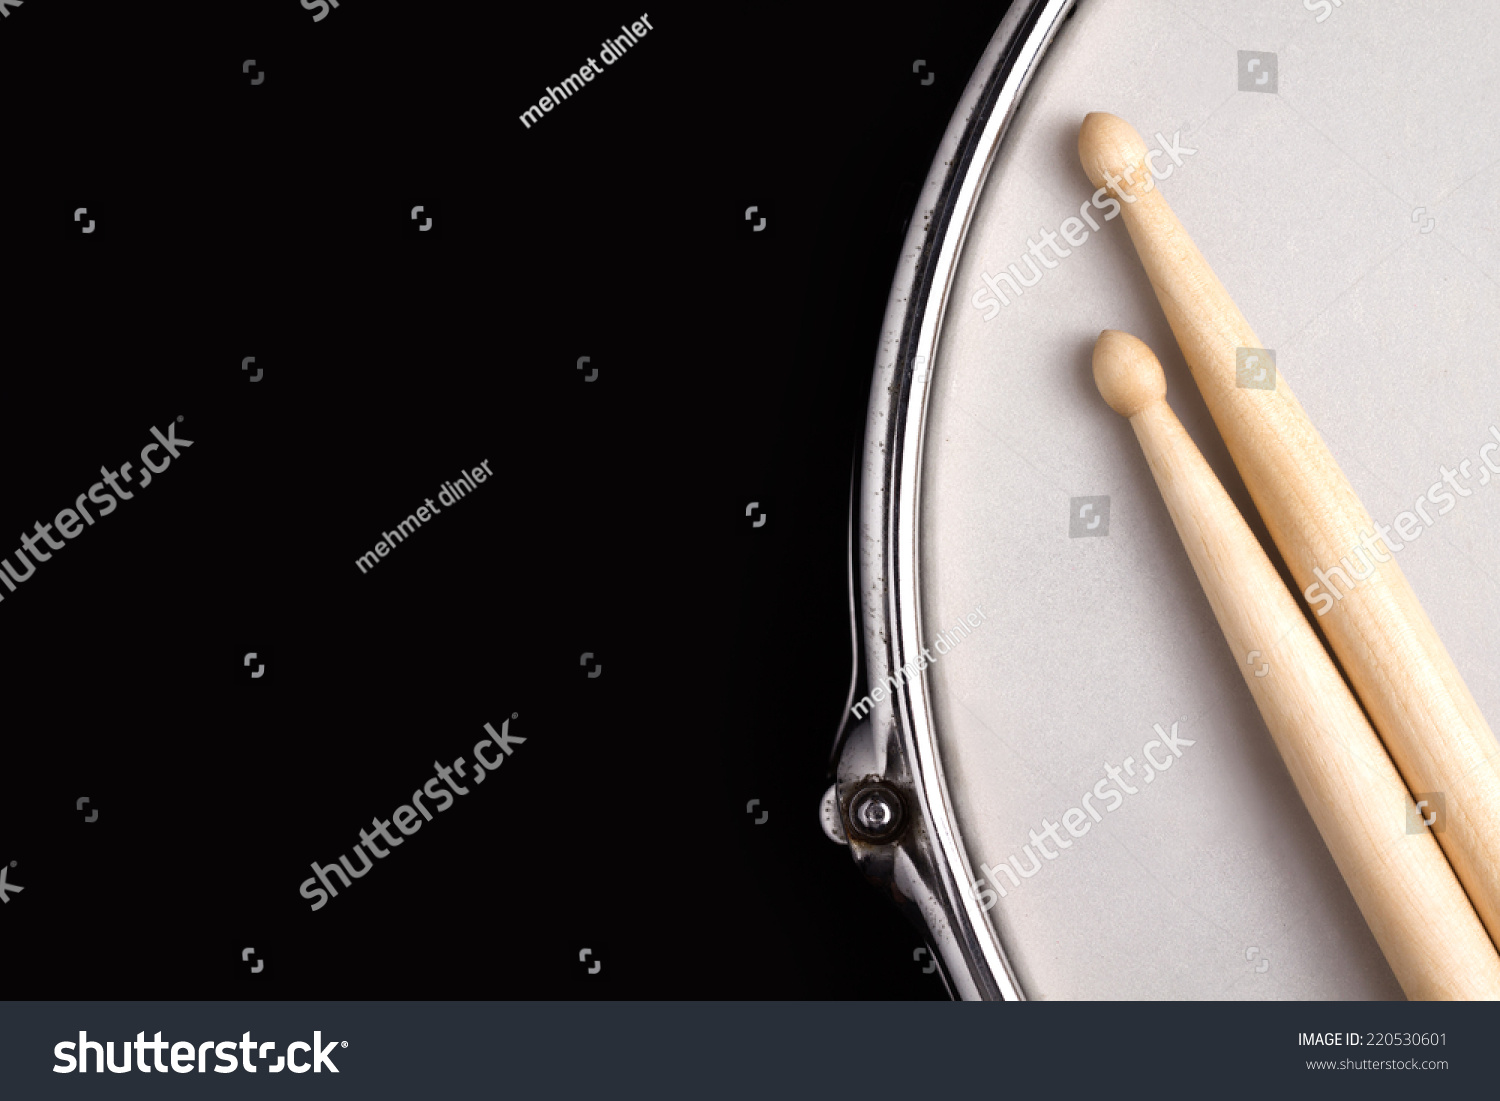 Best 58 Drumstick Background on HipWallpaper Percussion 1500x1101